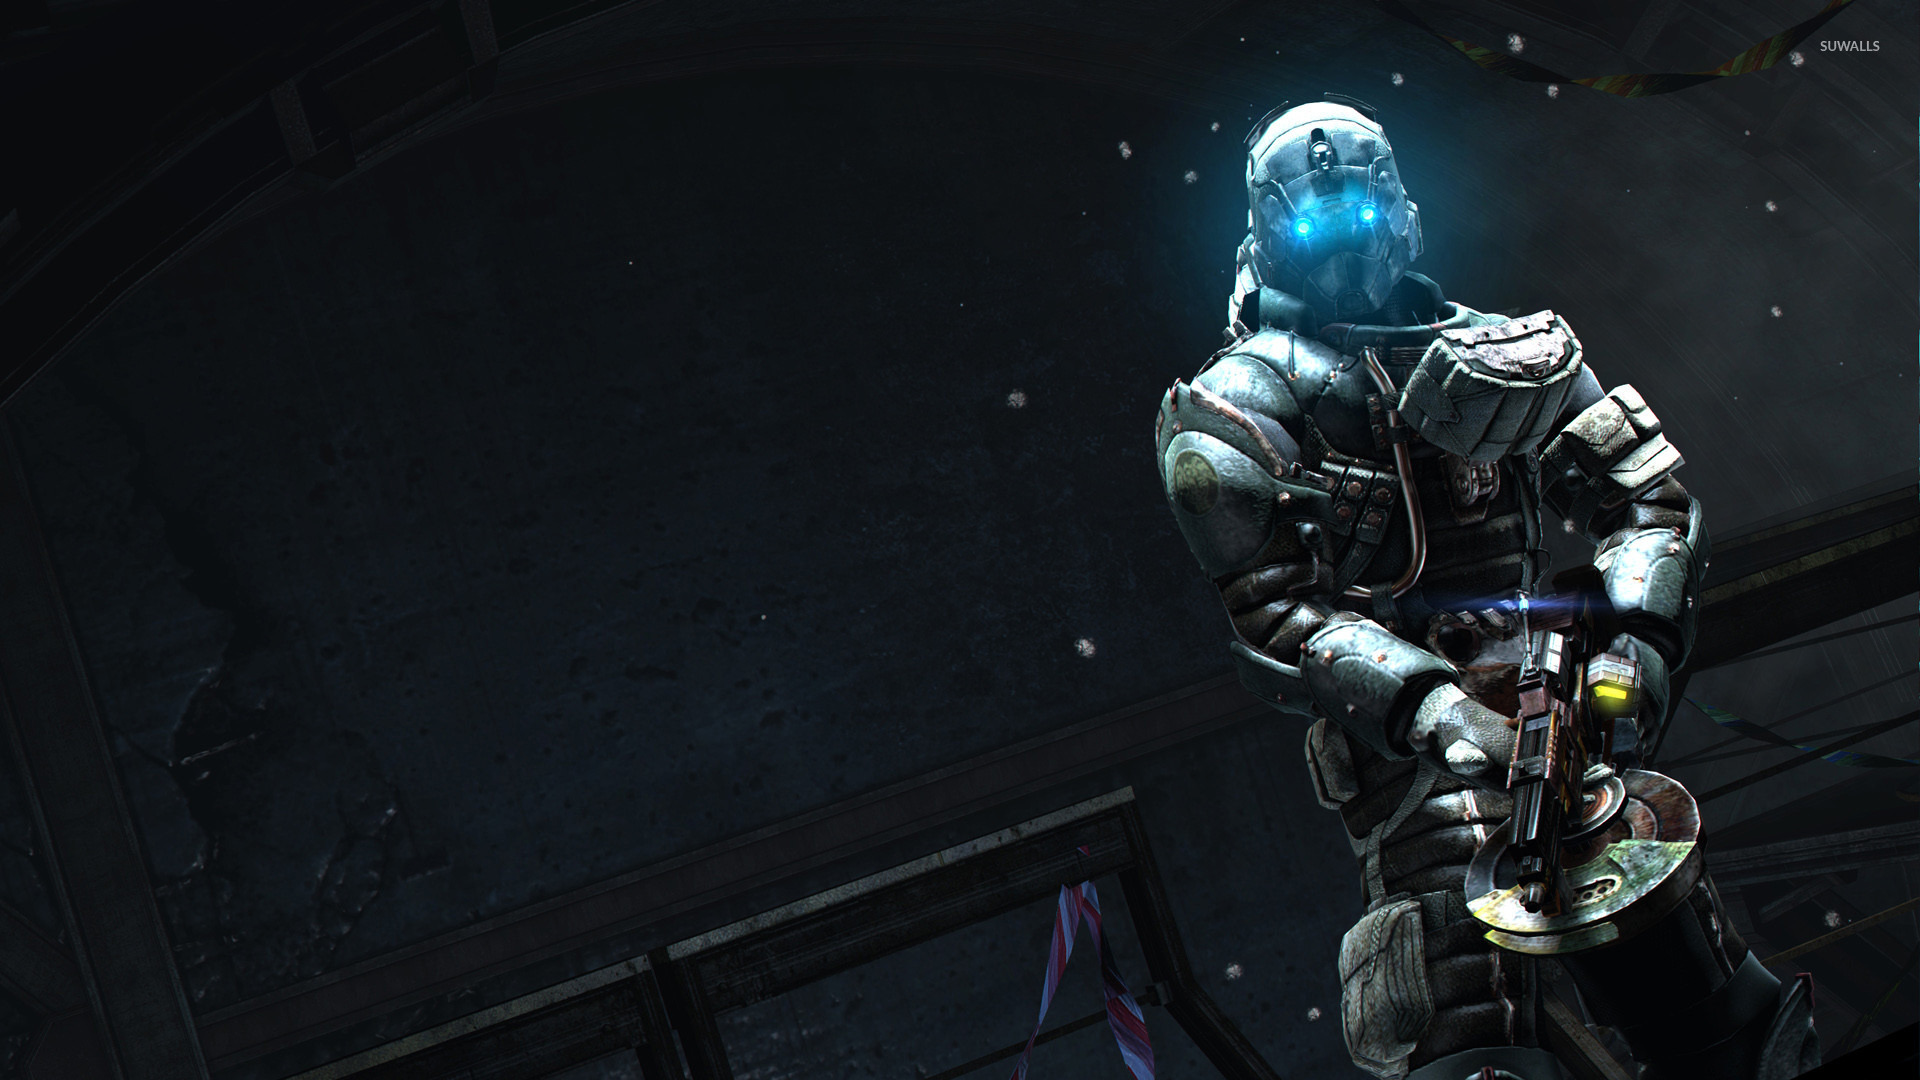 Dead Space 3 wallpaper - Game wallpapers - #17267